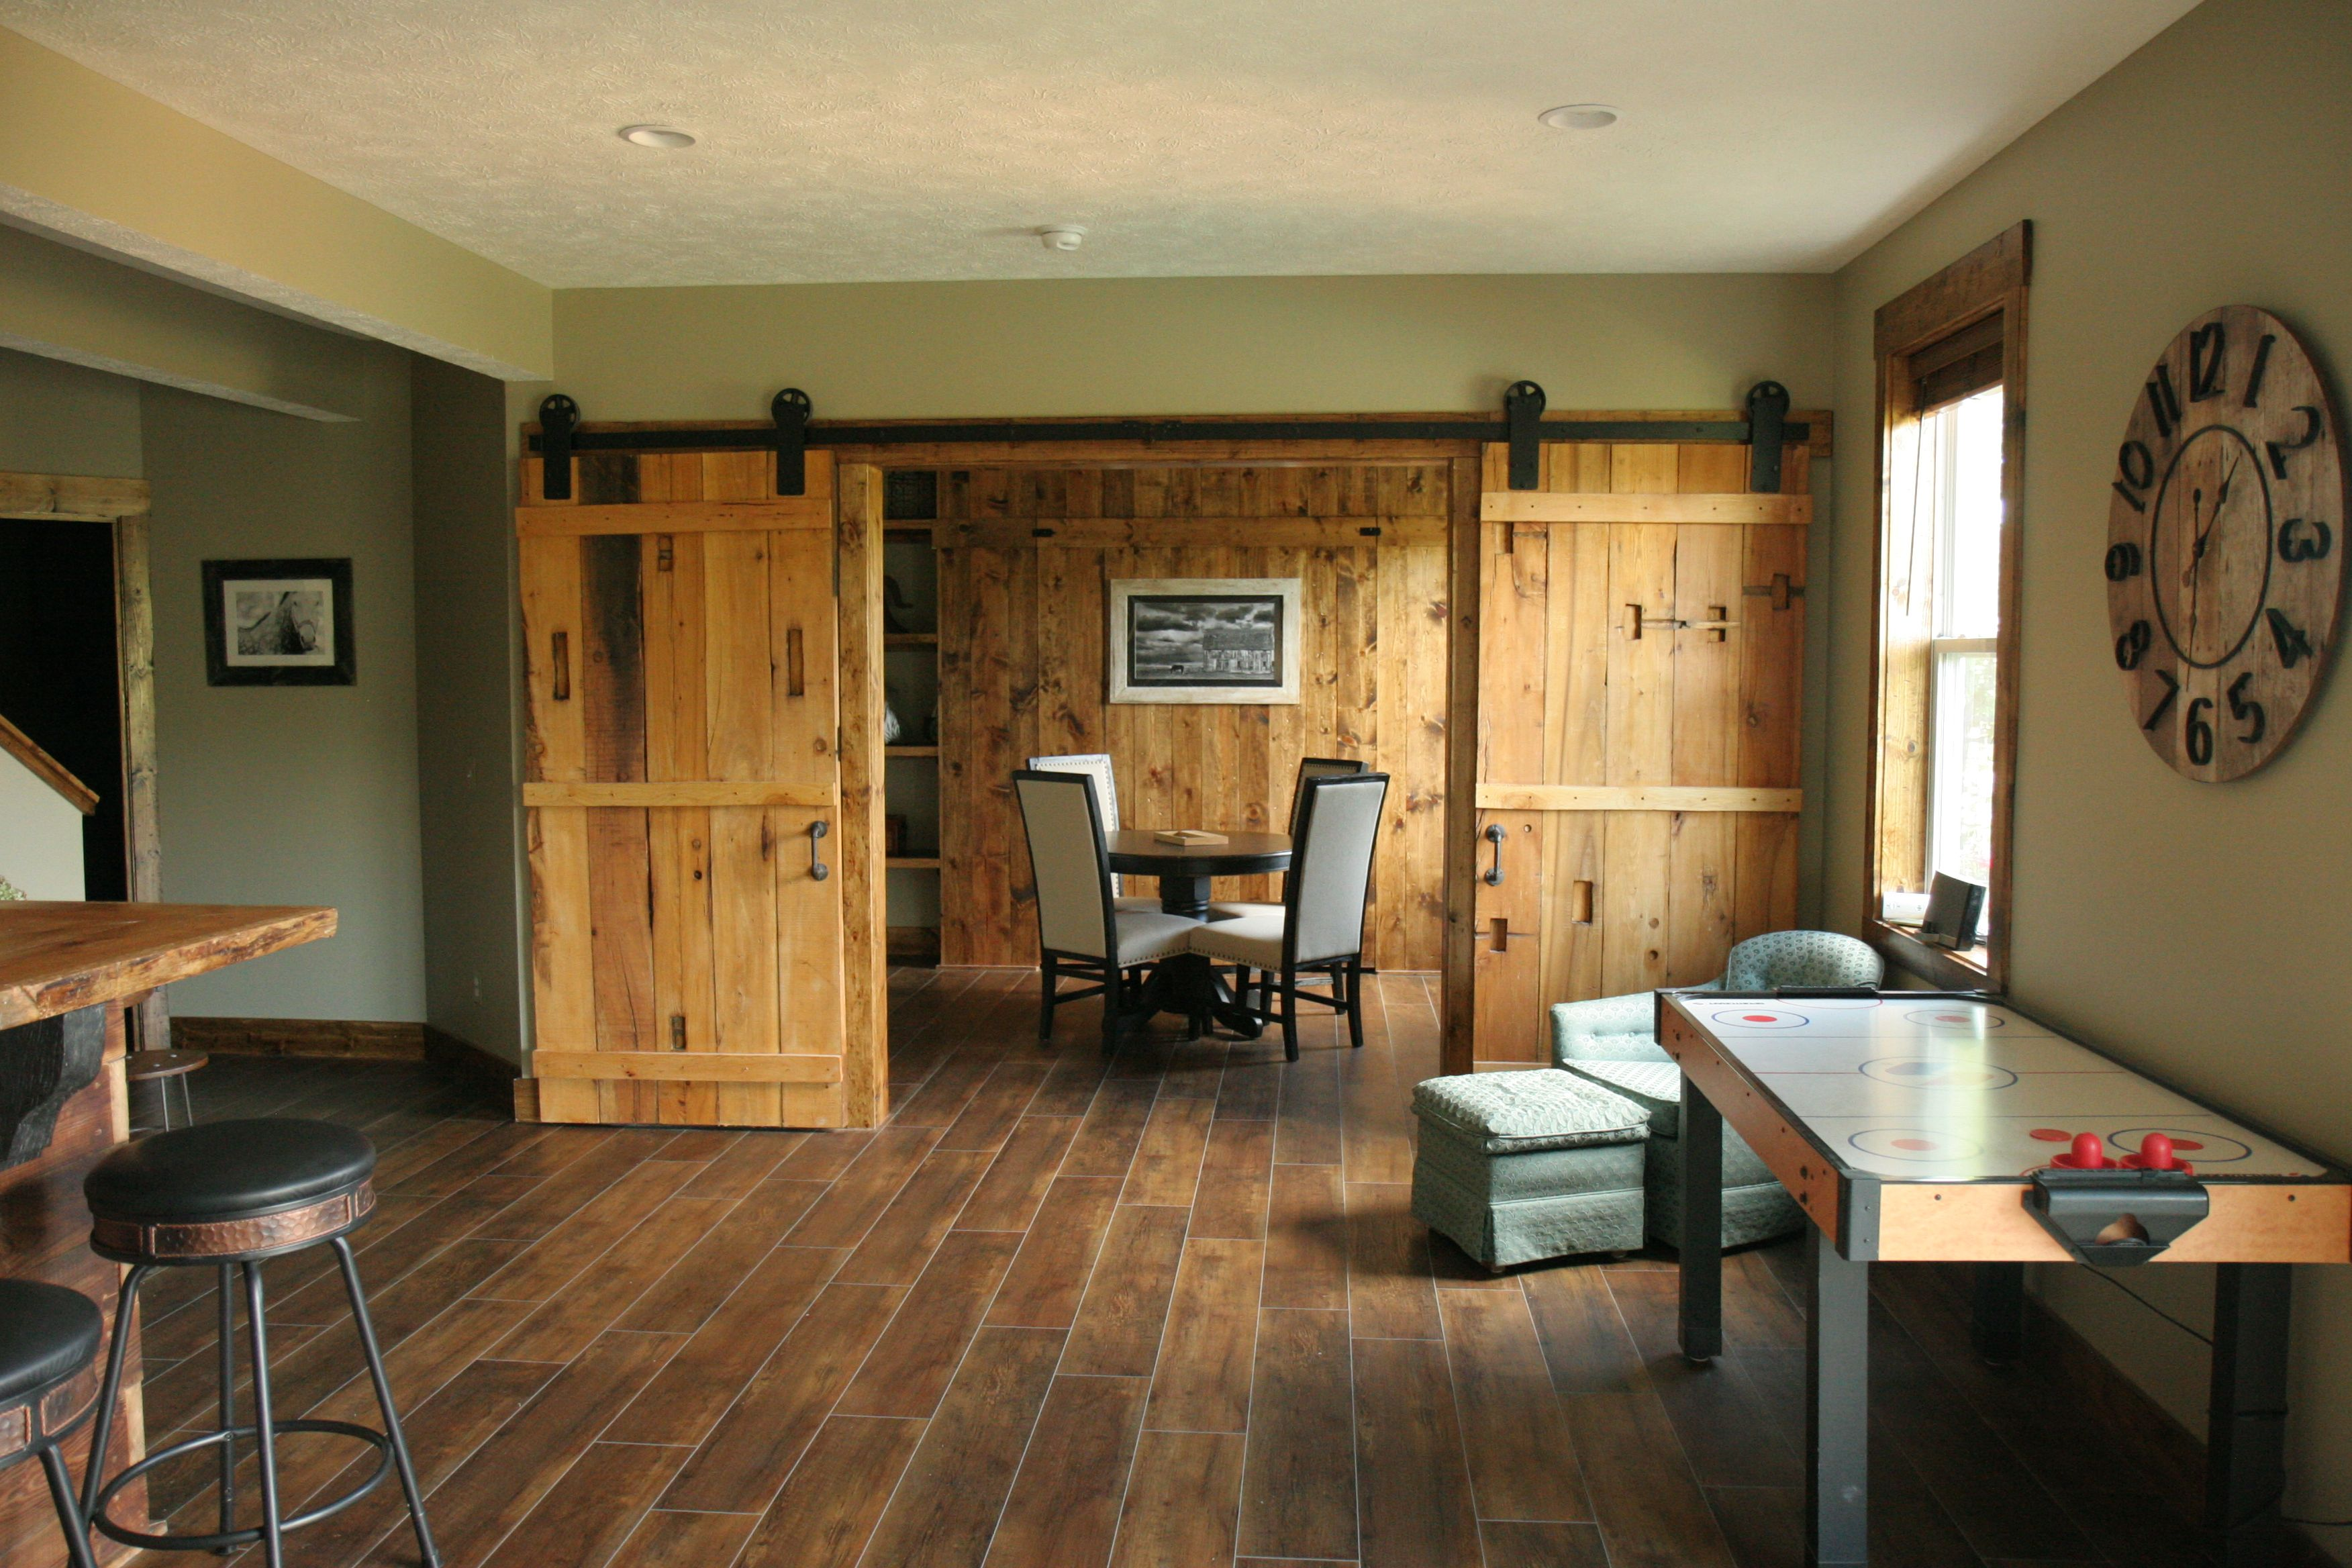 Basement game room with sliding barn doors and murphy bed behind